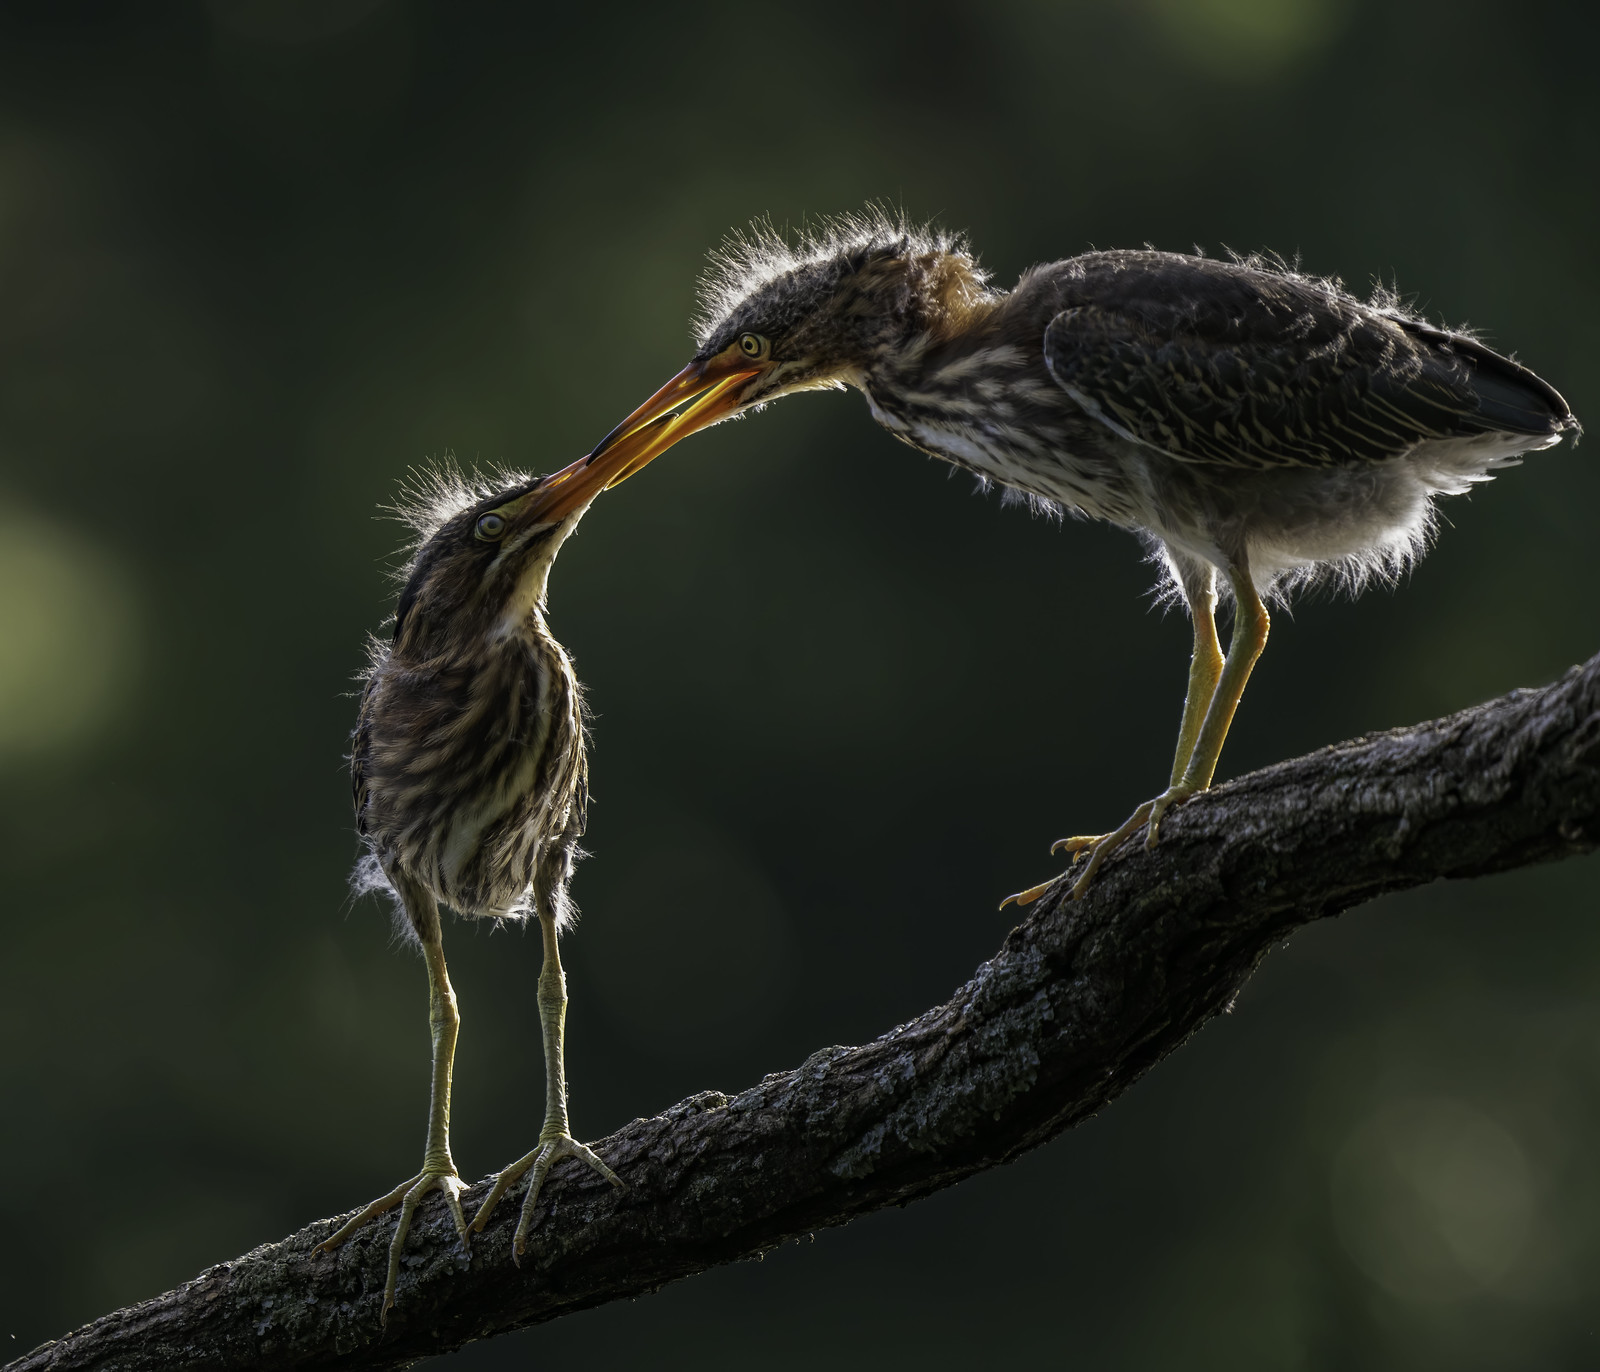 Green Heron nestlings